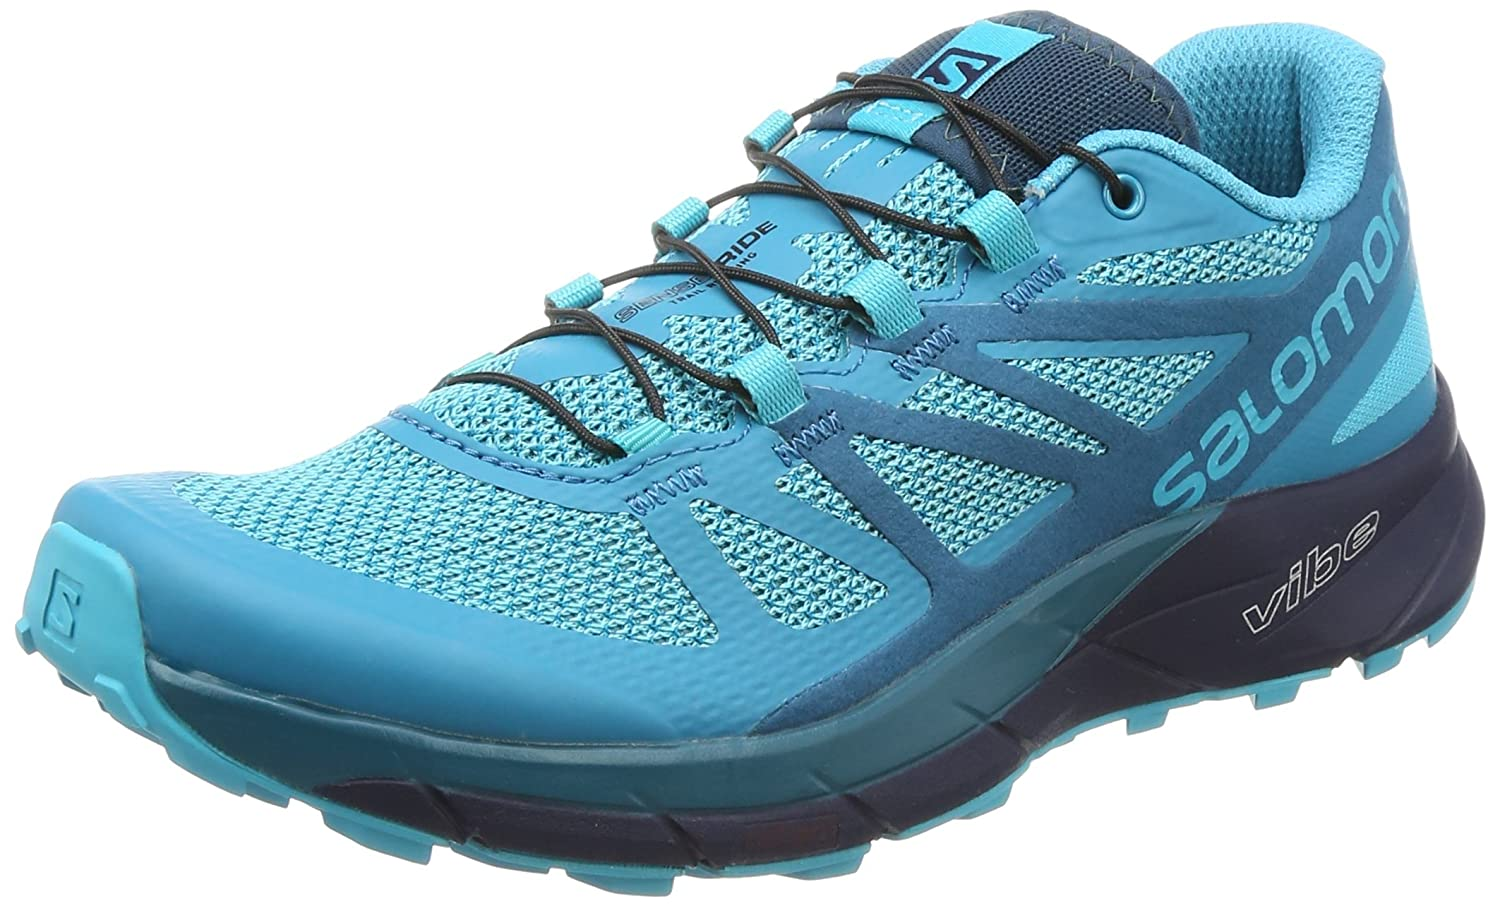 06c64fcd33 Salomon Sense Ride Running Shoe - Women's